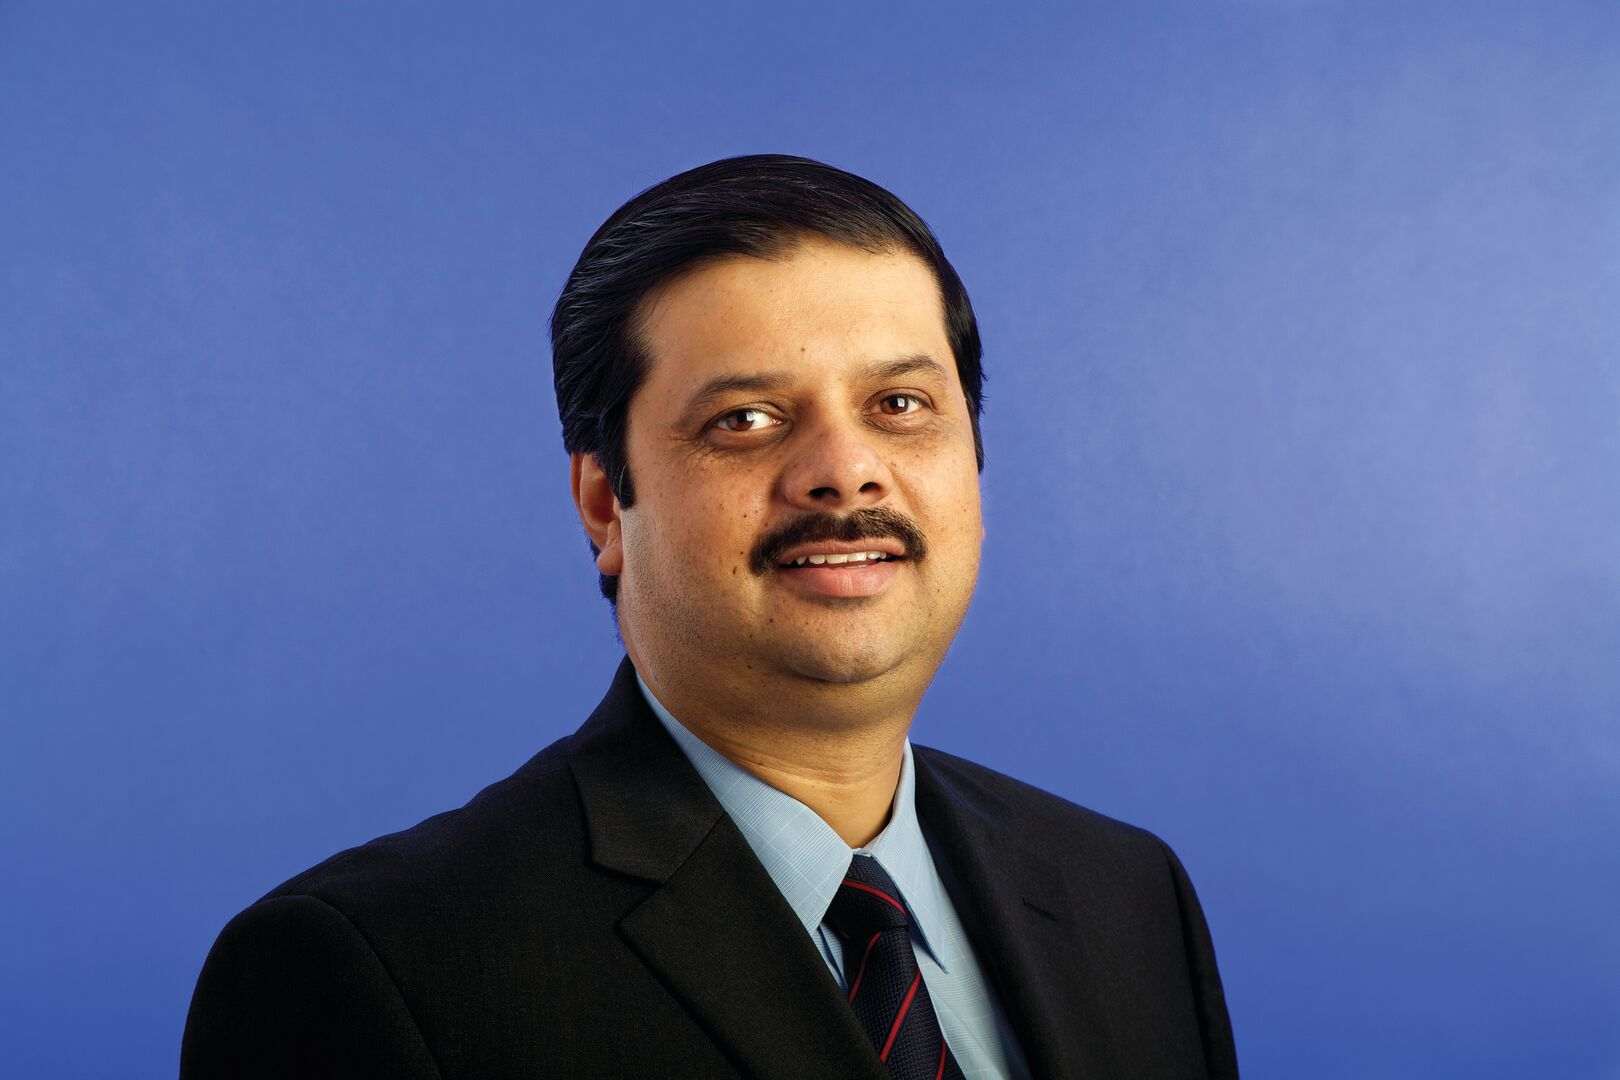 Mr Koushick Chatterjee, Executive Director and Chief Financial Officer of Tata Steel Limited